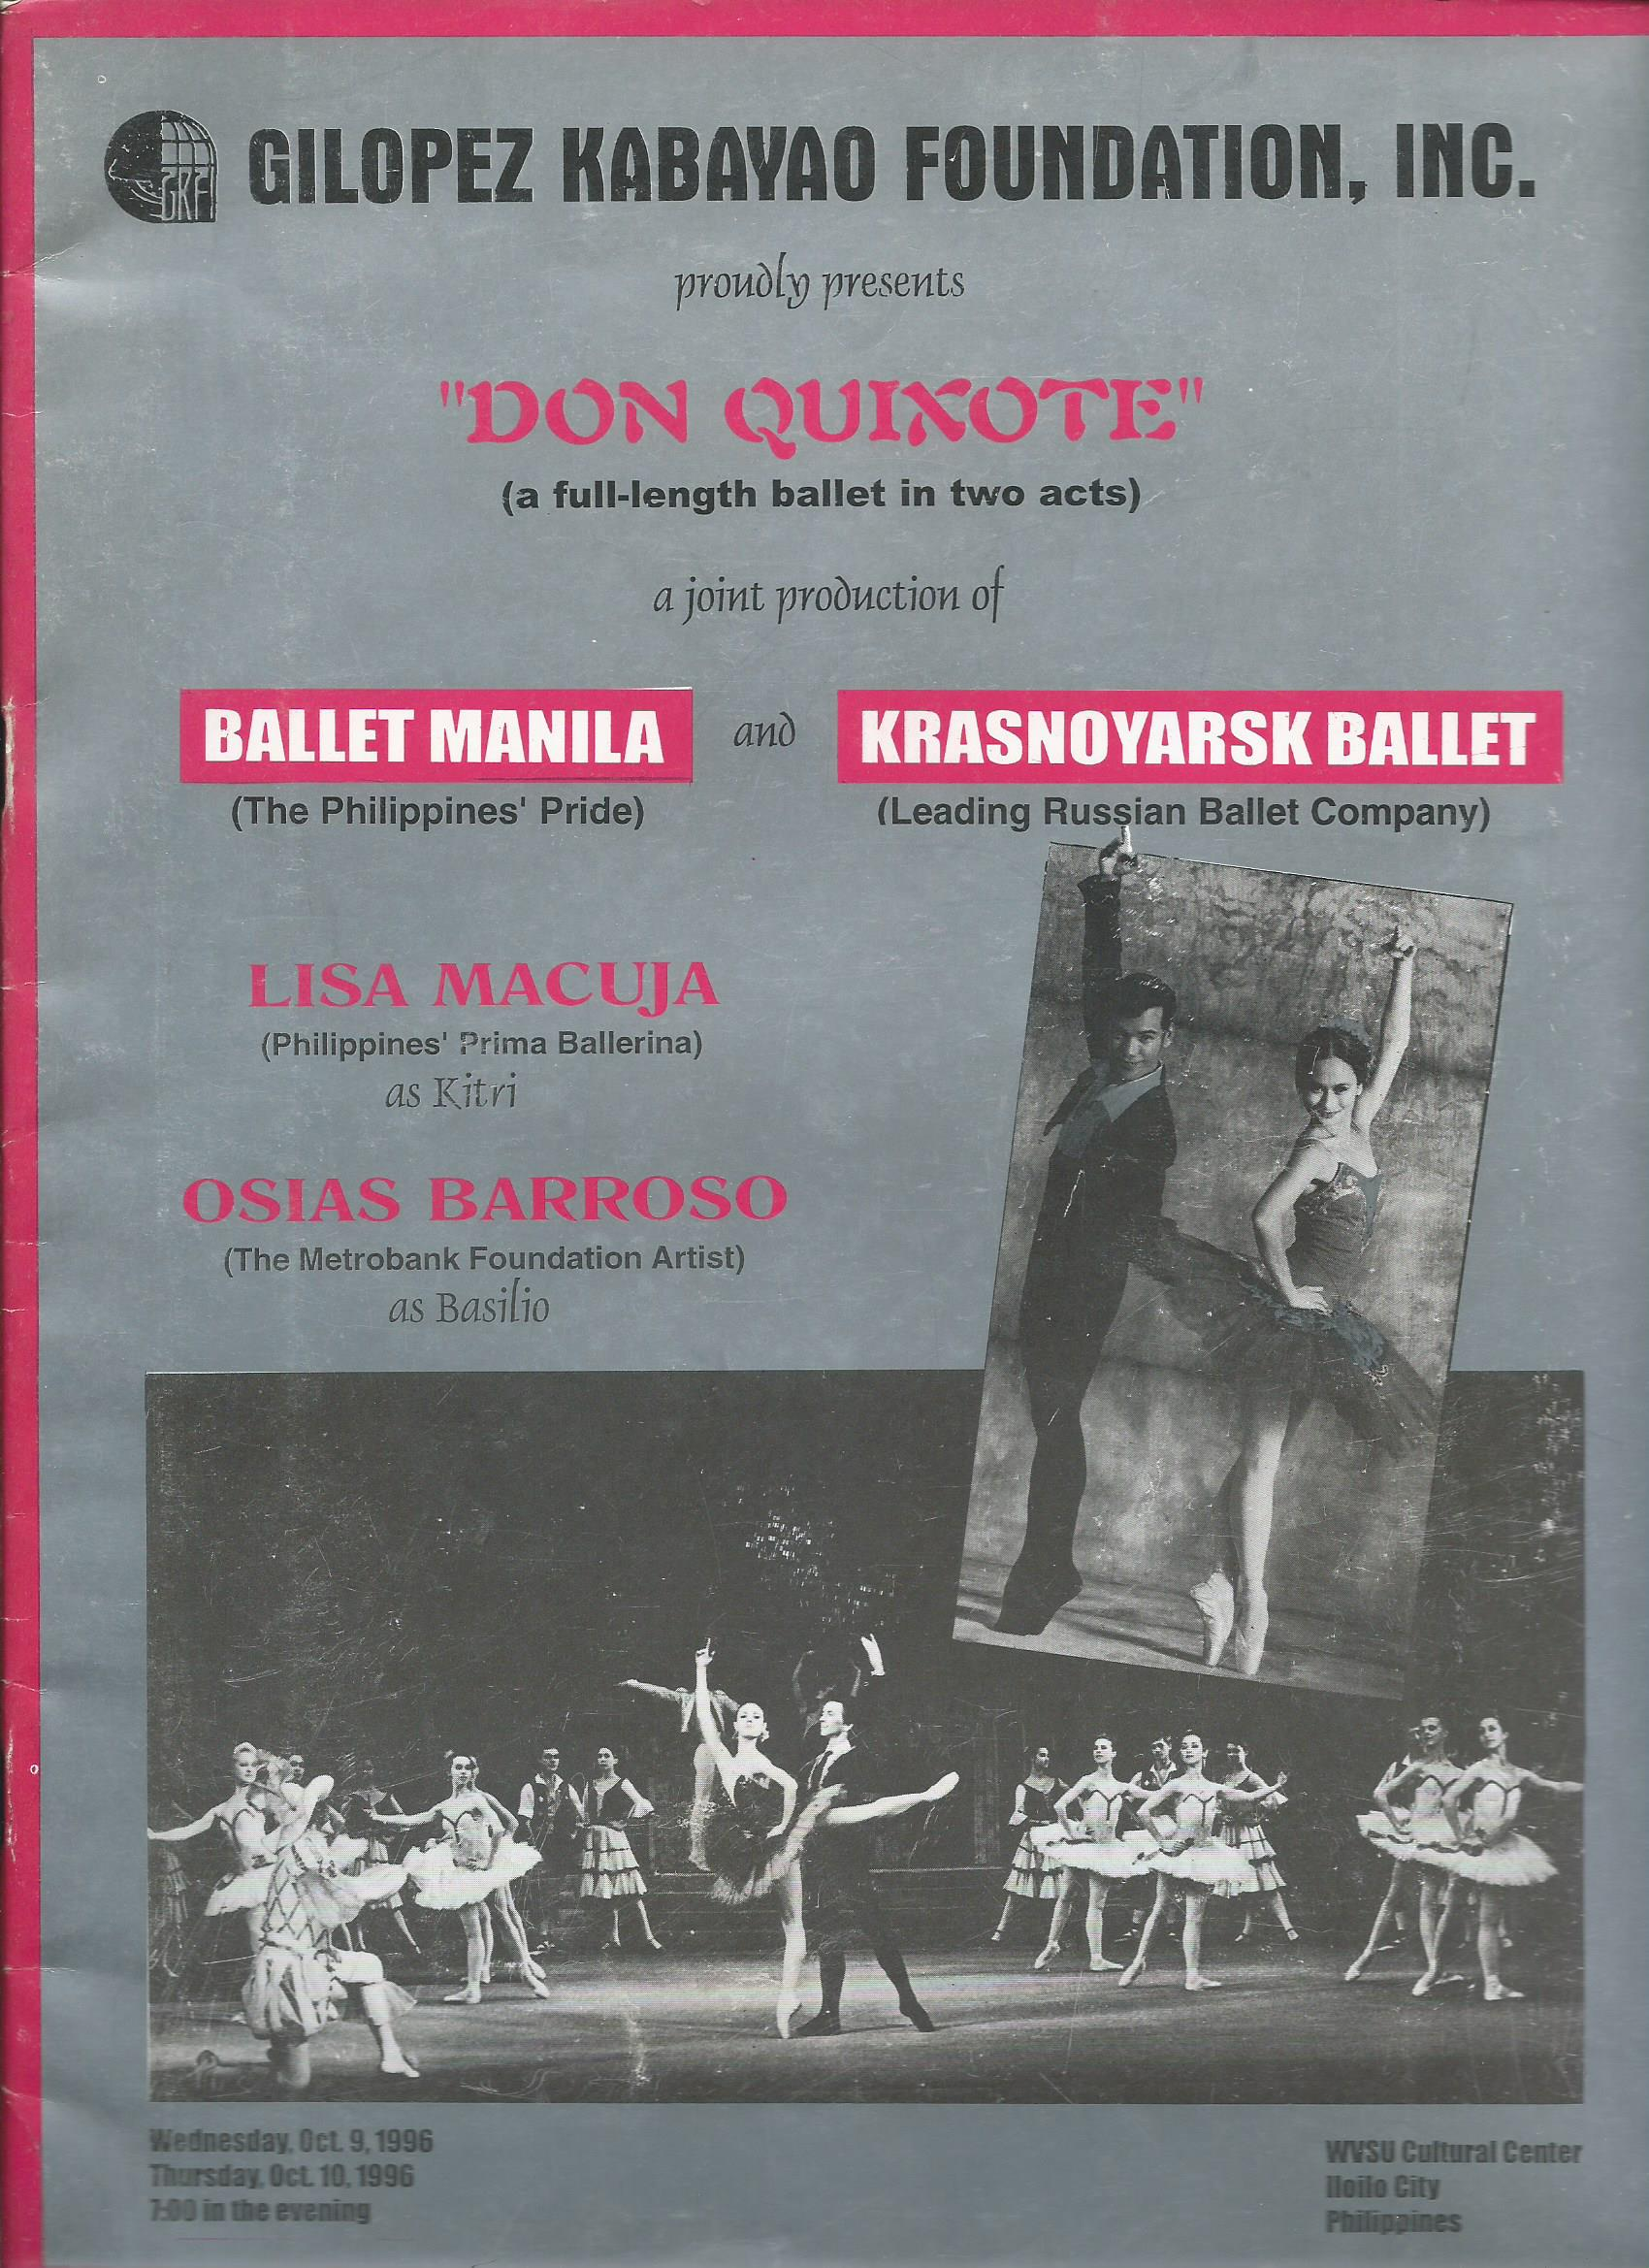 Ballet Manila performed    Don Quixote    for the first time in 1996 in collaboration with the Krasnoyarsk Ballet. Principal dancers Macuja-Elizalde and Barroso assumed the lead roles, as seen in this souvenir program for the Iloilo shows. Image courtesy of the Ballet Manila Archives